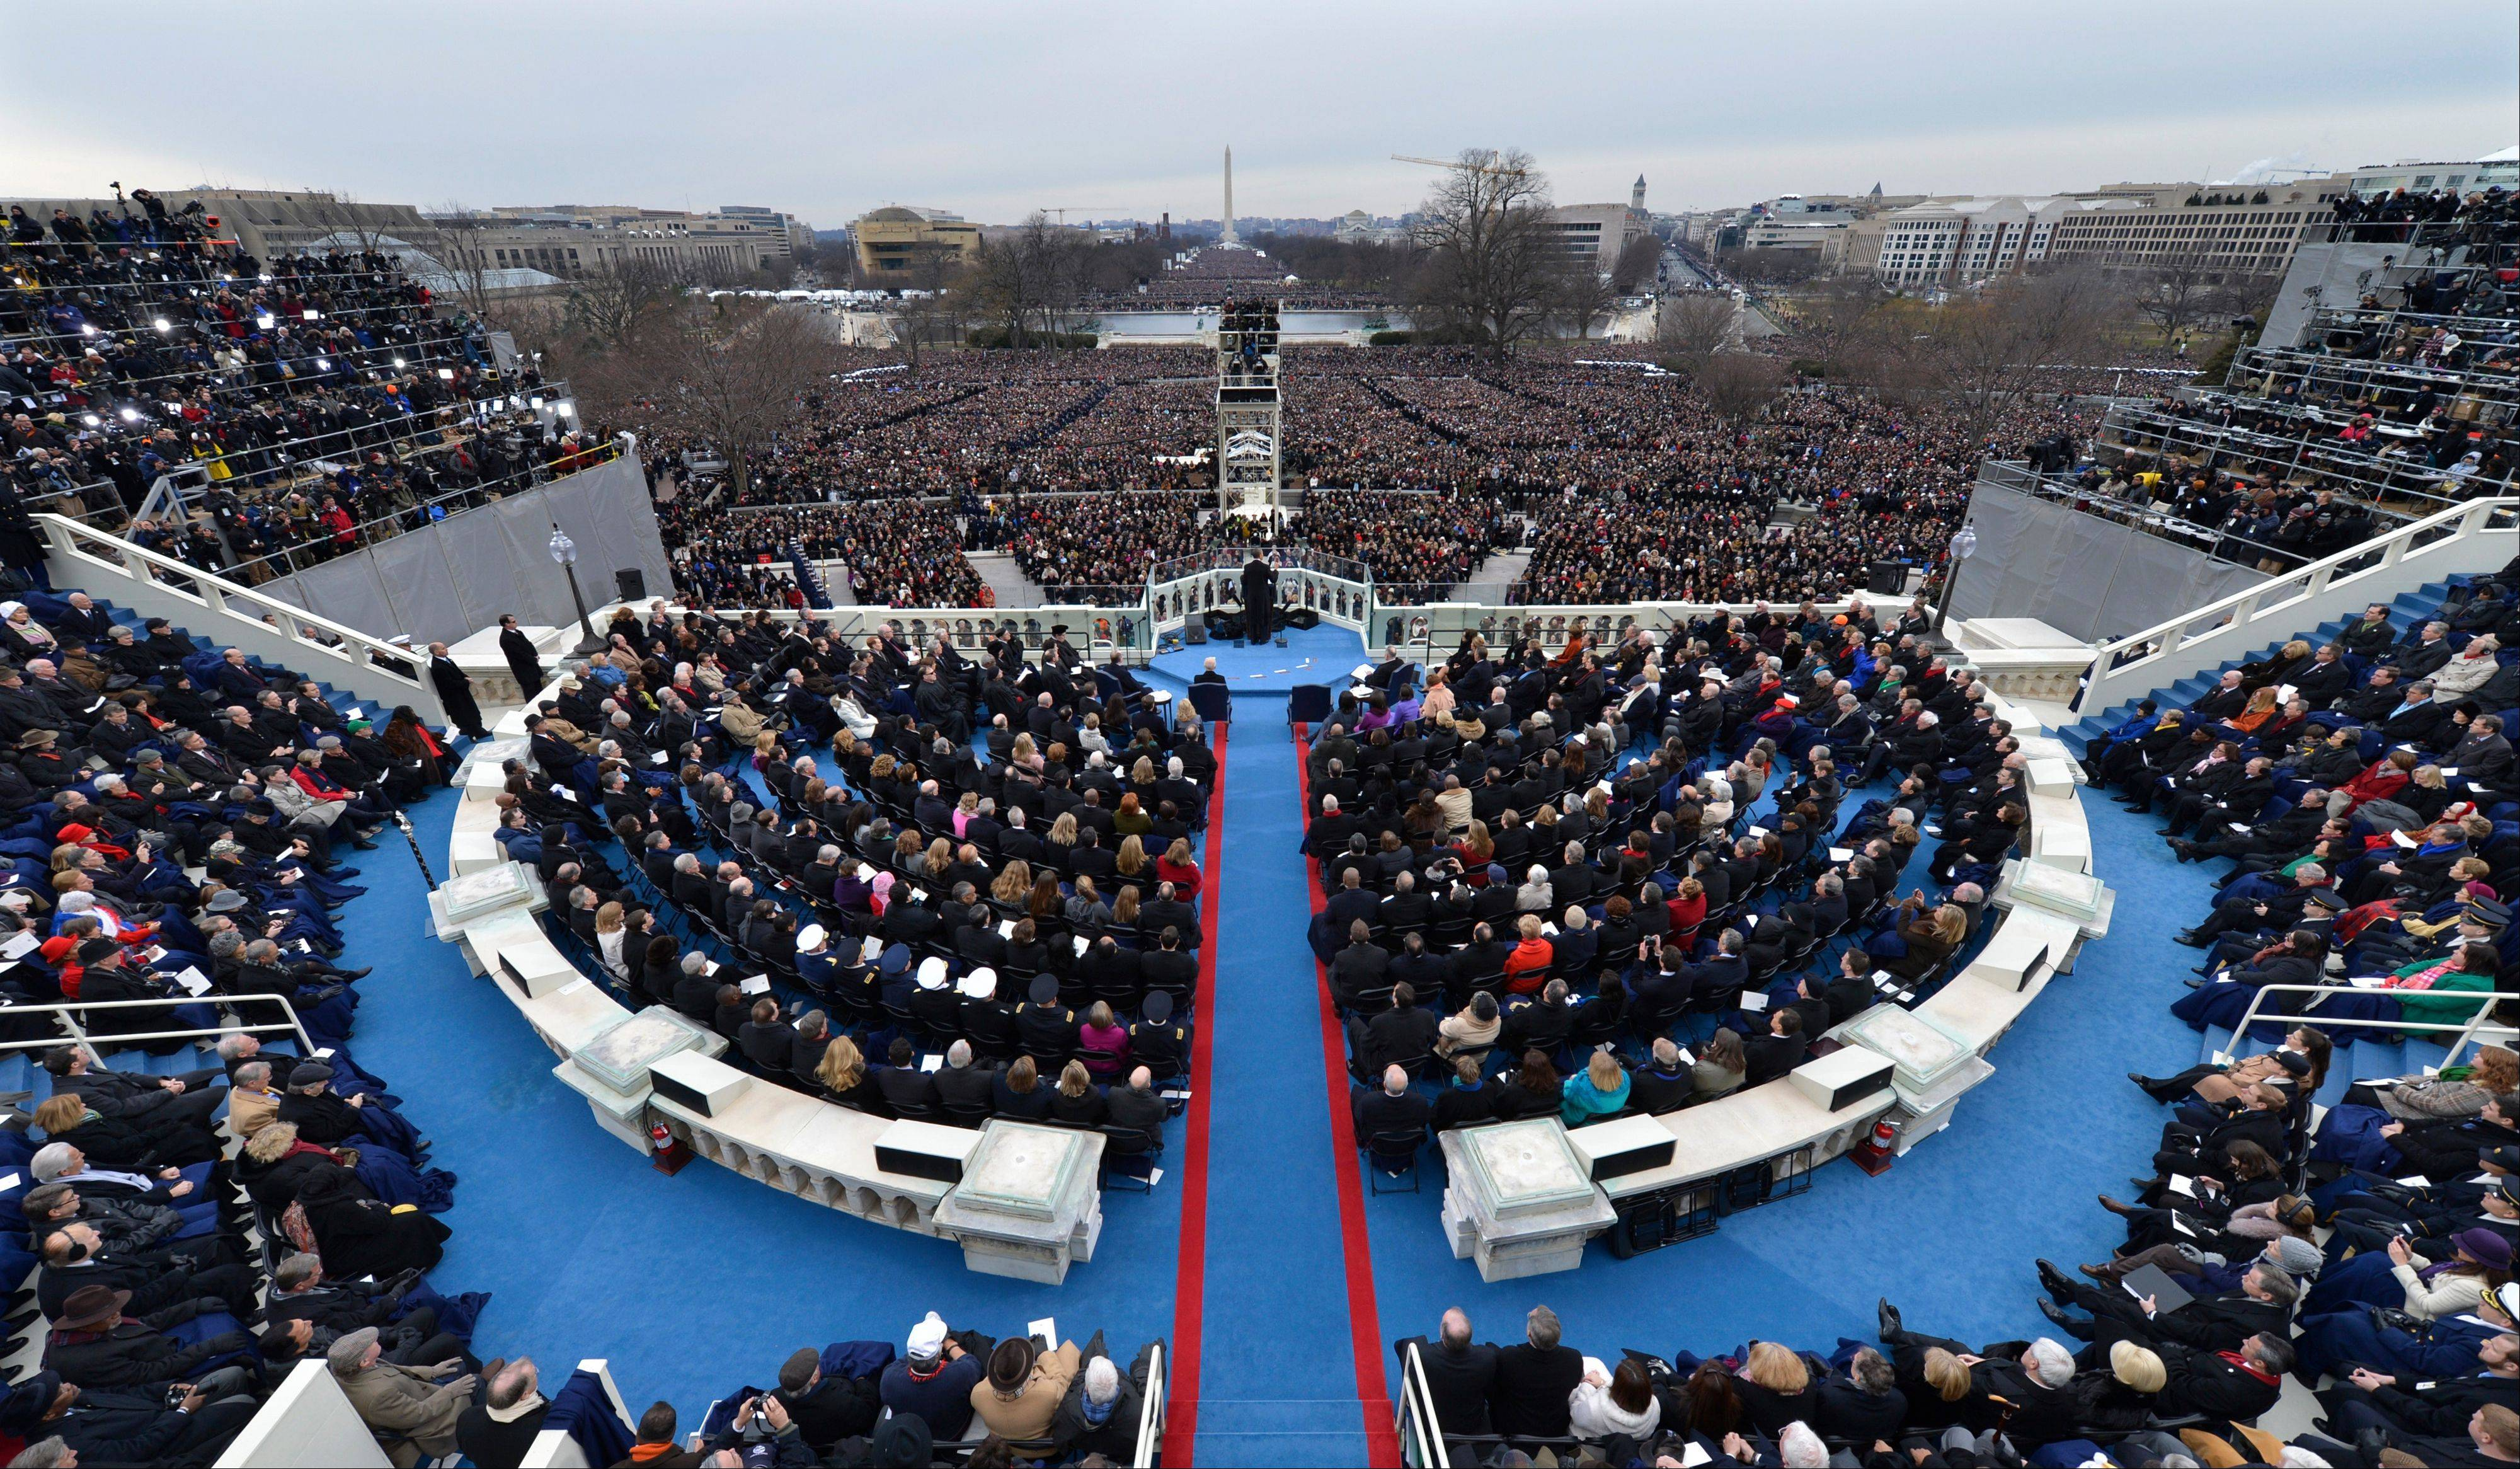 President Barack Obama speaks at the ceremonial swearing-in at the U.S. Capitol during the 57th Presidential Inauguration in Washington, Monday, Jan. 21, 2013.